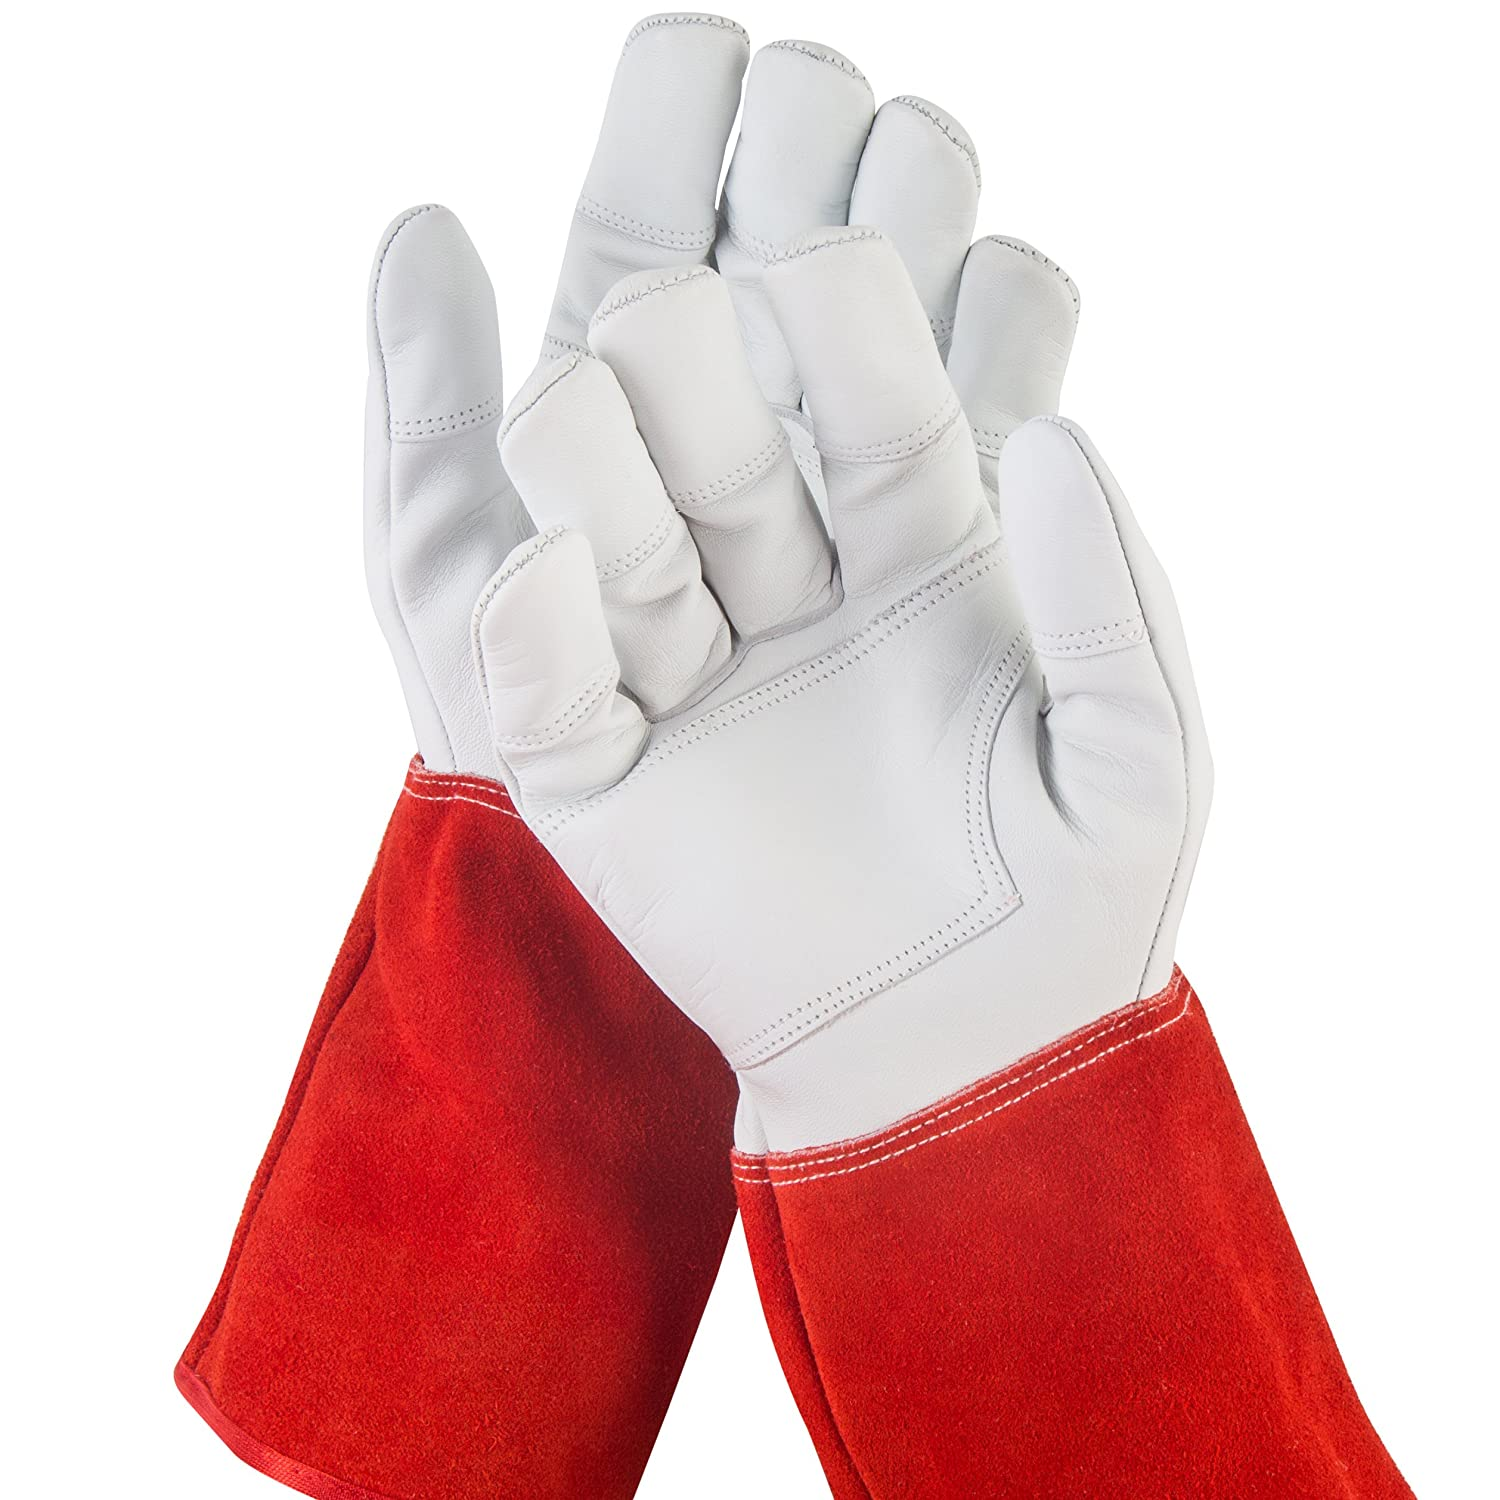 designer gardening gloves. Amazon com  NoCry Long Leather Gardening Gloves Puncture Resistant with Extra Forearm Protection and Reinforced Palms Fingertips